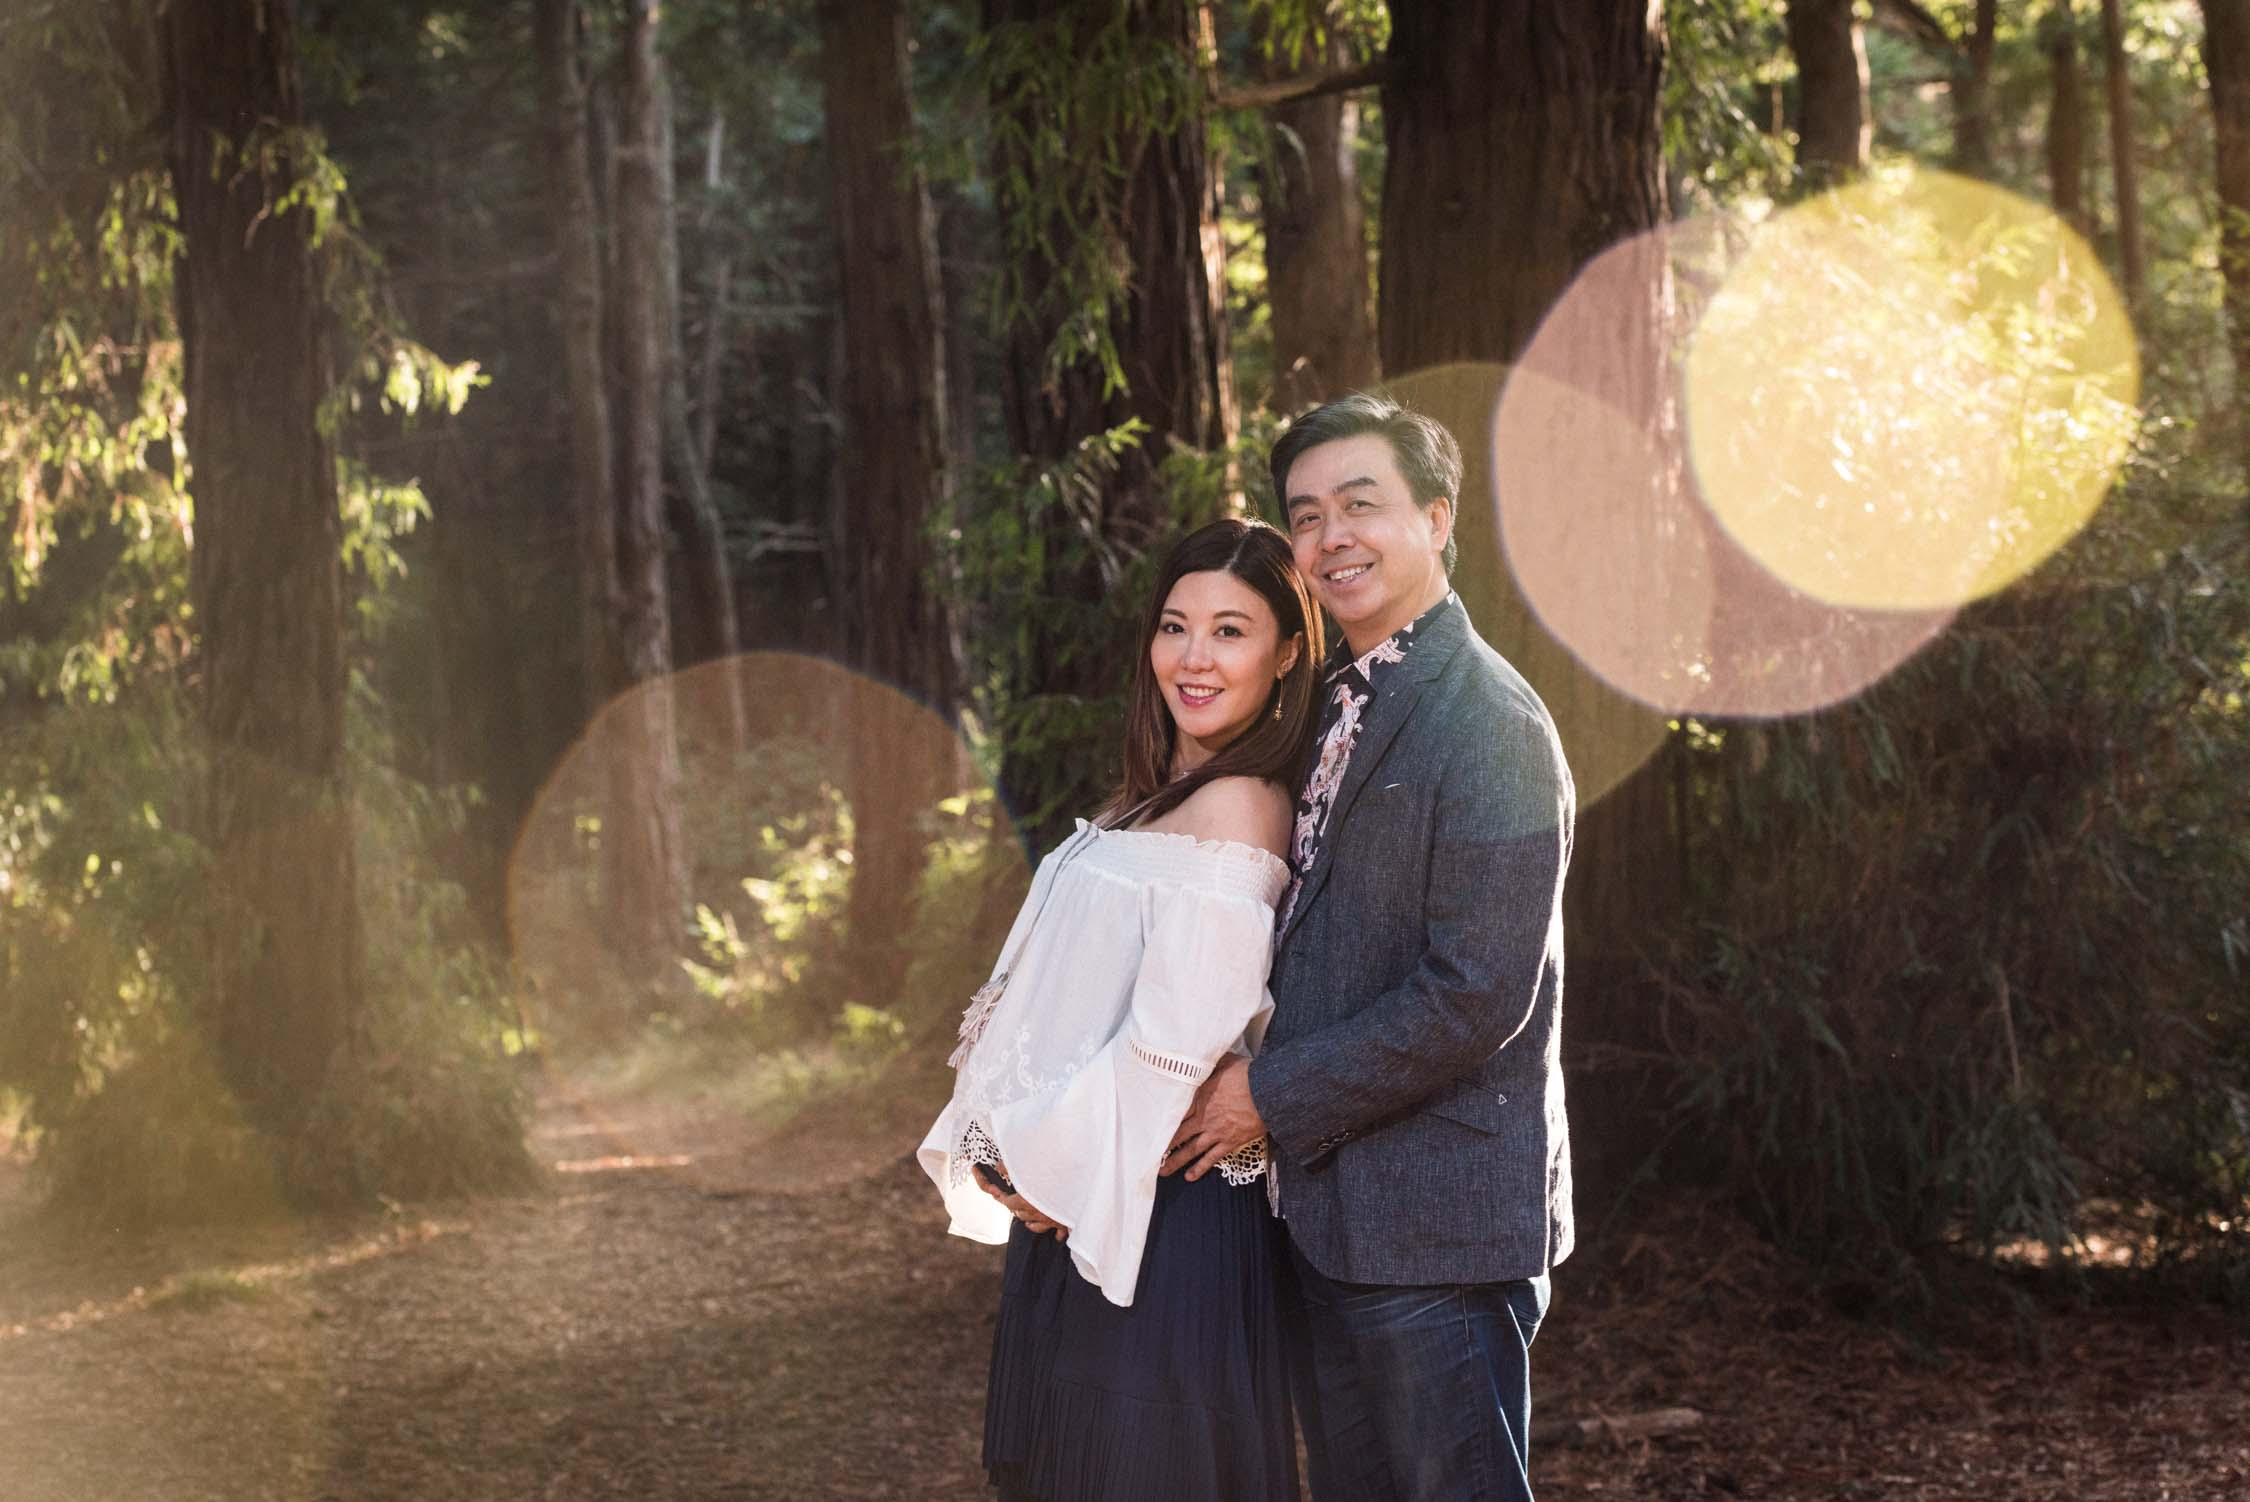 22_goldengatepark_maternity_photographer.jpg